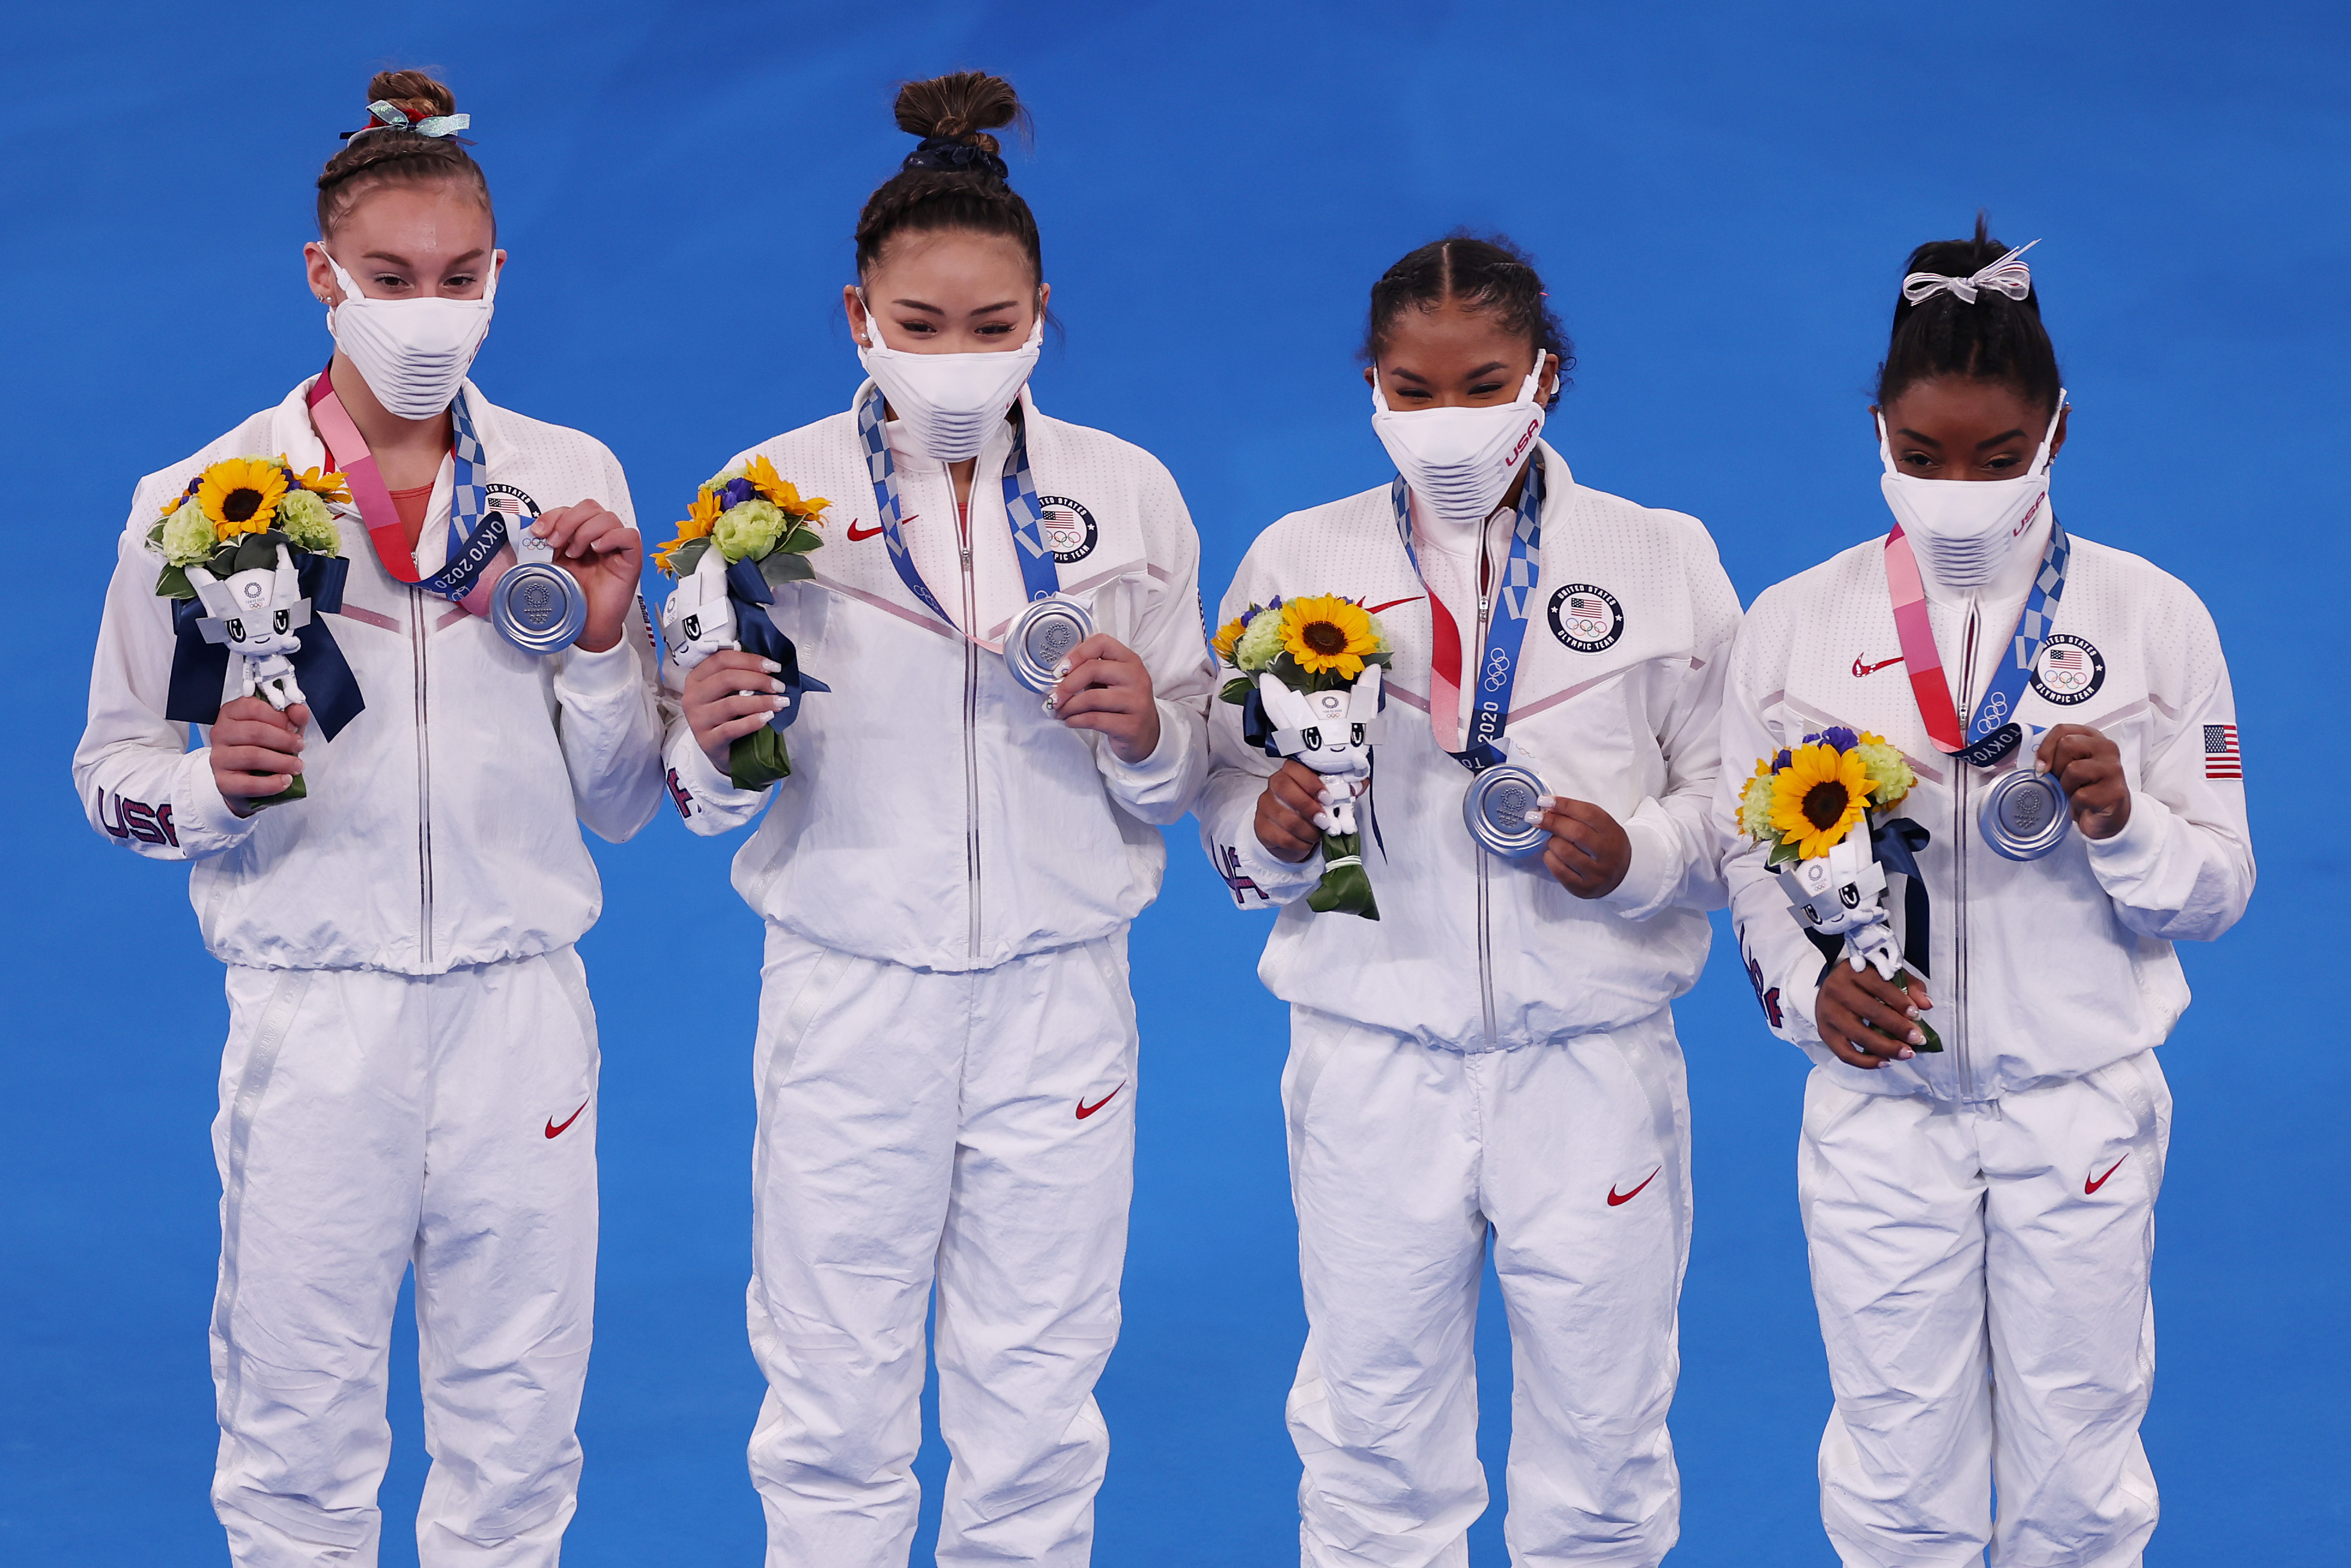 From left, American gymnasts Grace McCallum, Sunisa Lee, Jordan Chiles and Simone Biles celebrate after winning the silver medal during the Women's Team Final on July 27.